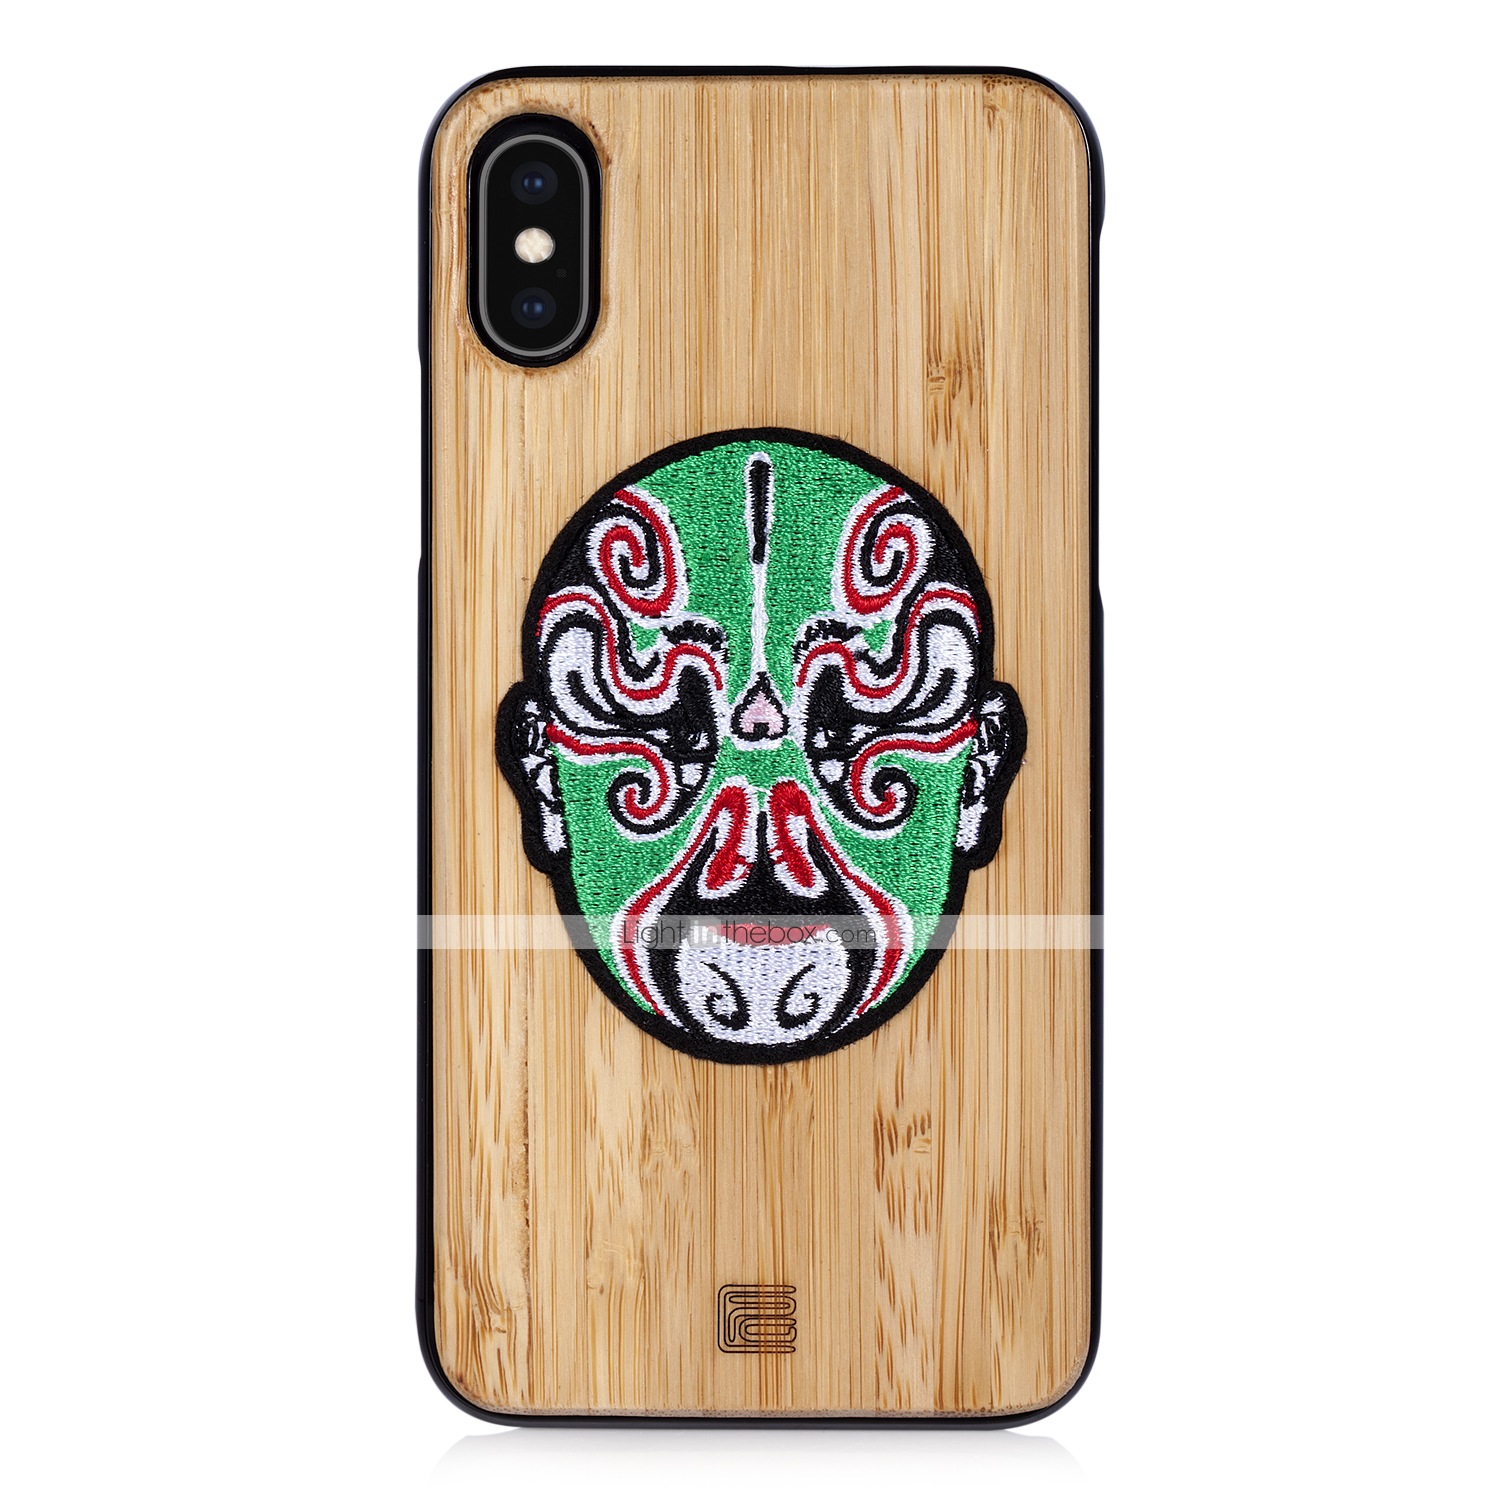 detailed look 9be93 eb55e Case For Apple iPhone XS Max / iPhone 6 Pattern Back Cover Cartoon ...